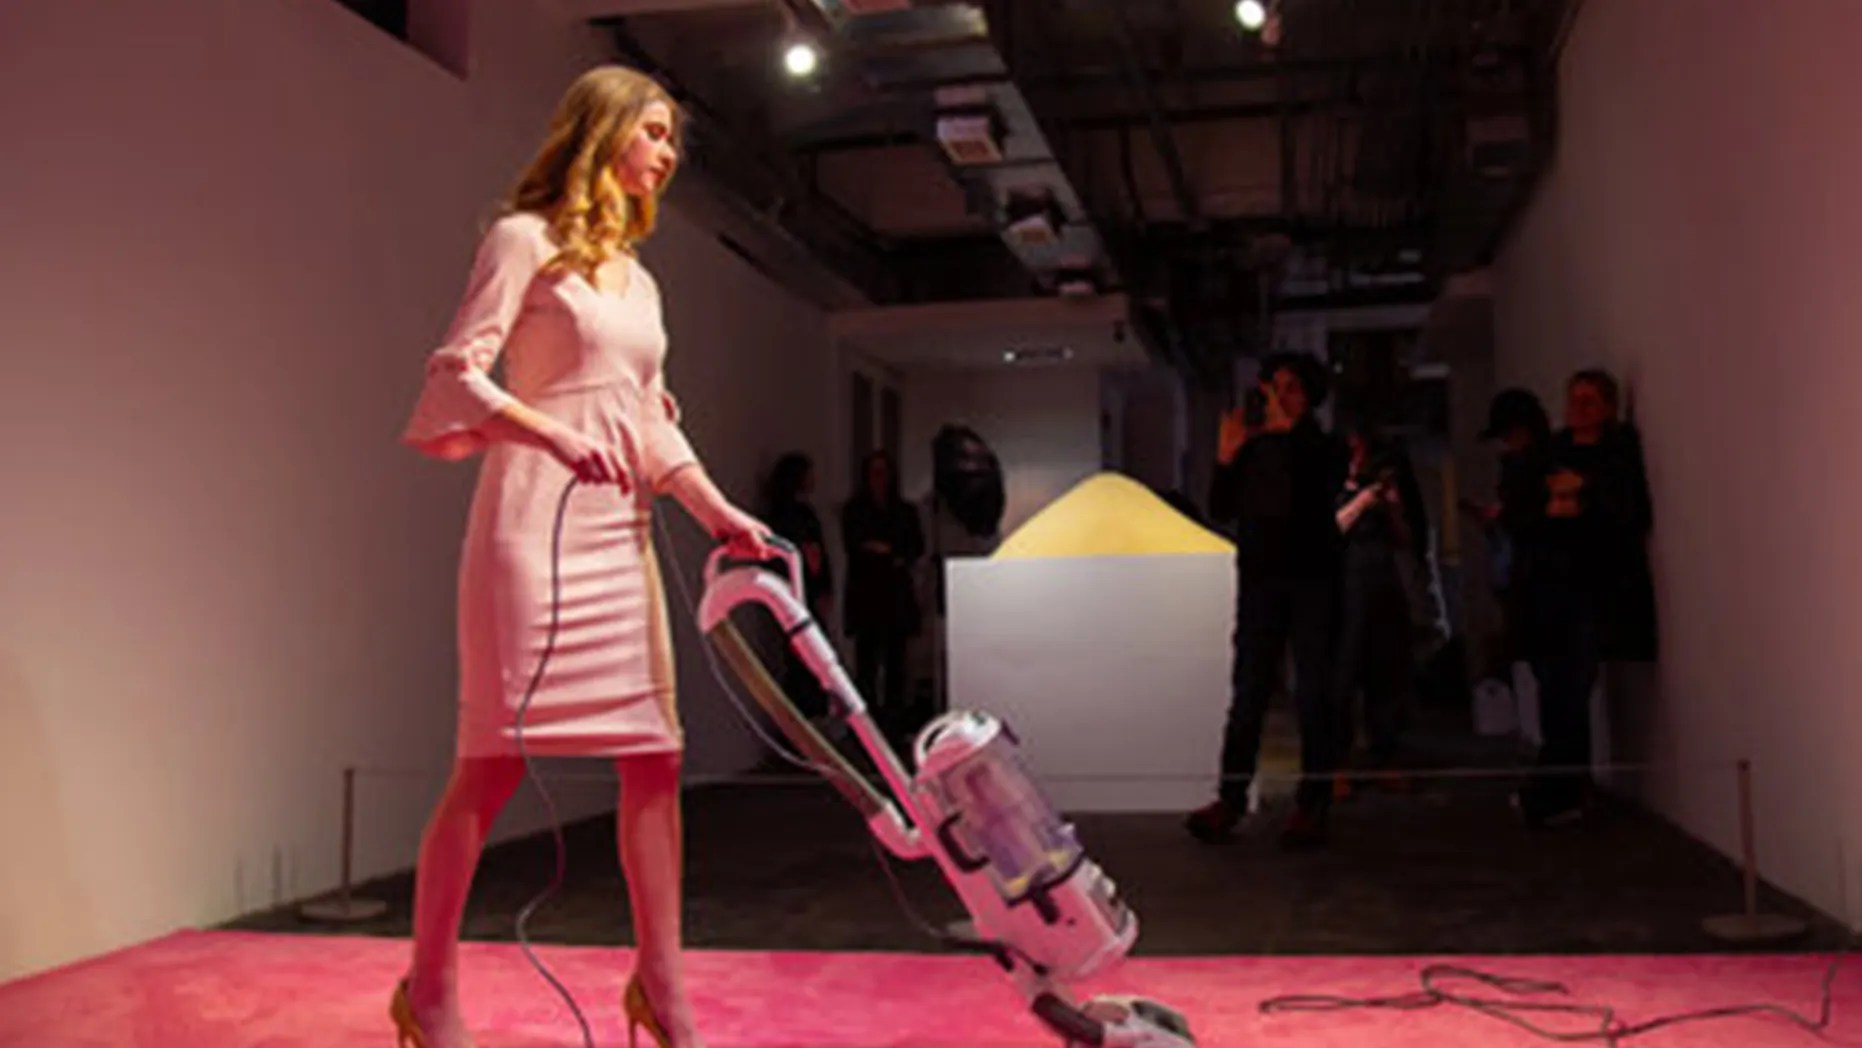 Dc Art Exhibit Features Ivanka Trump -alike Vacuuming Invites Visitors Toss Crumbs